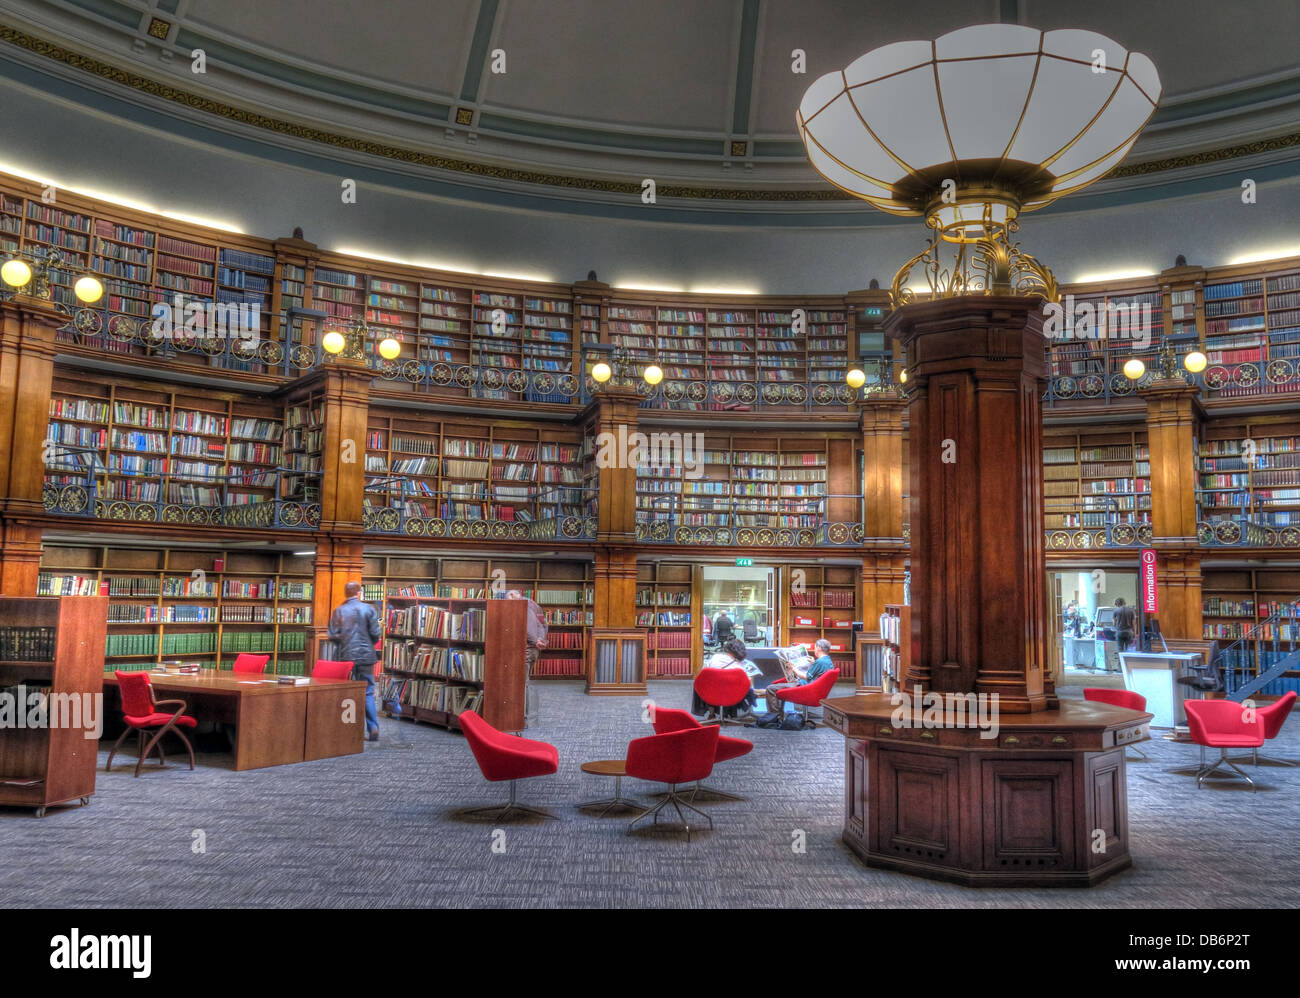 Liverpool Central Library, Picton reading room interior , Merseyside England UK Stock Photo